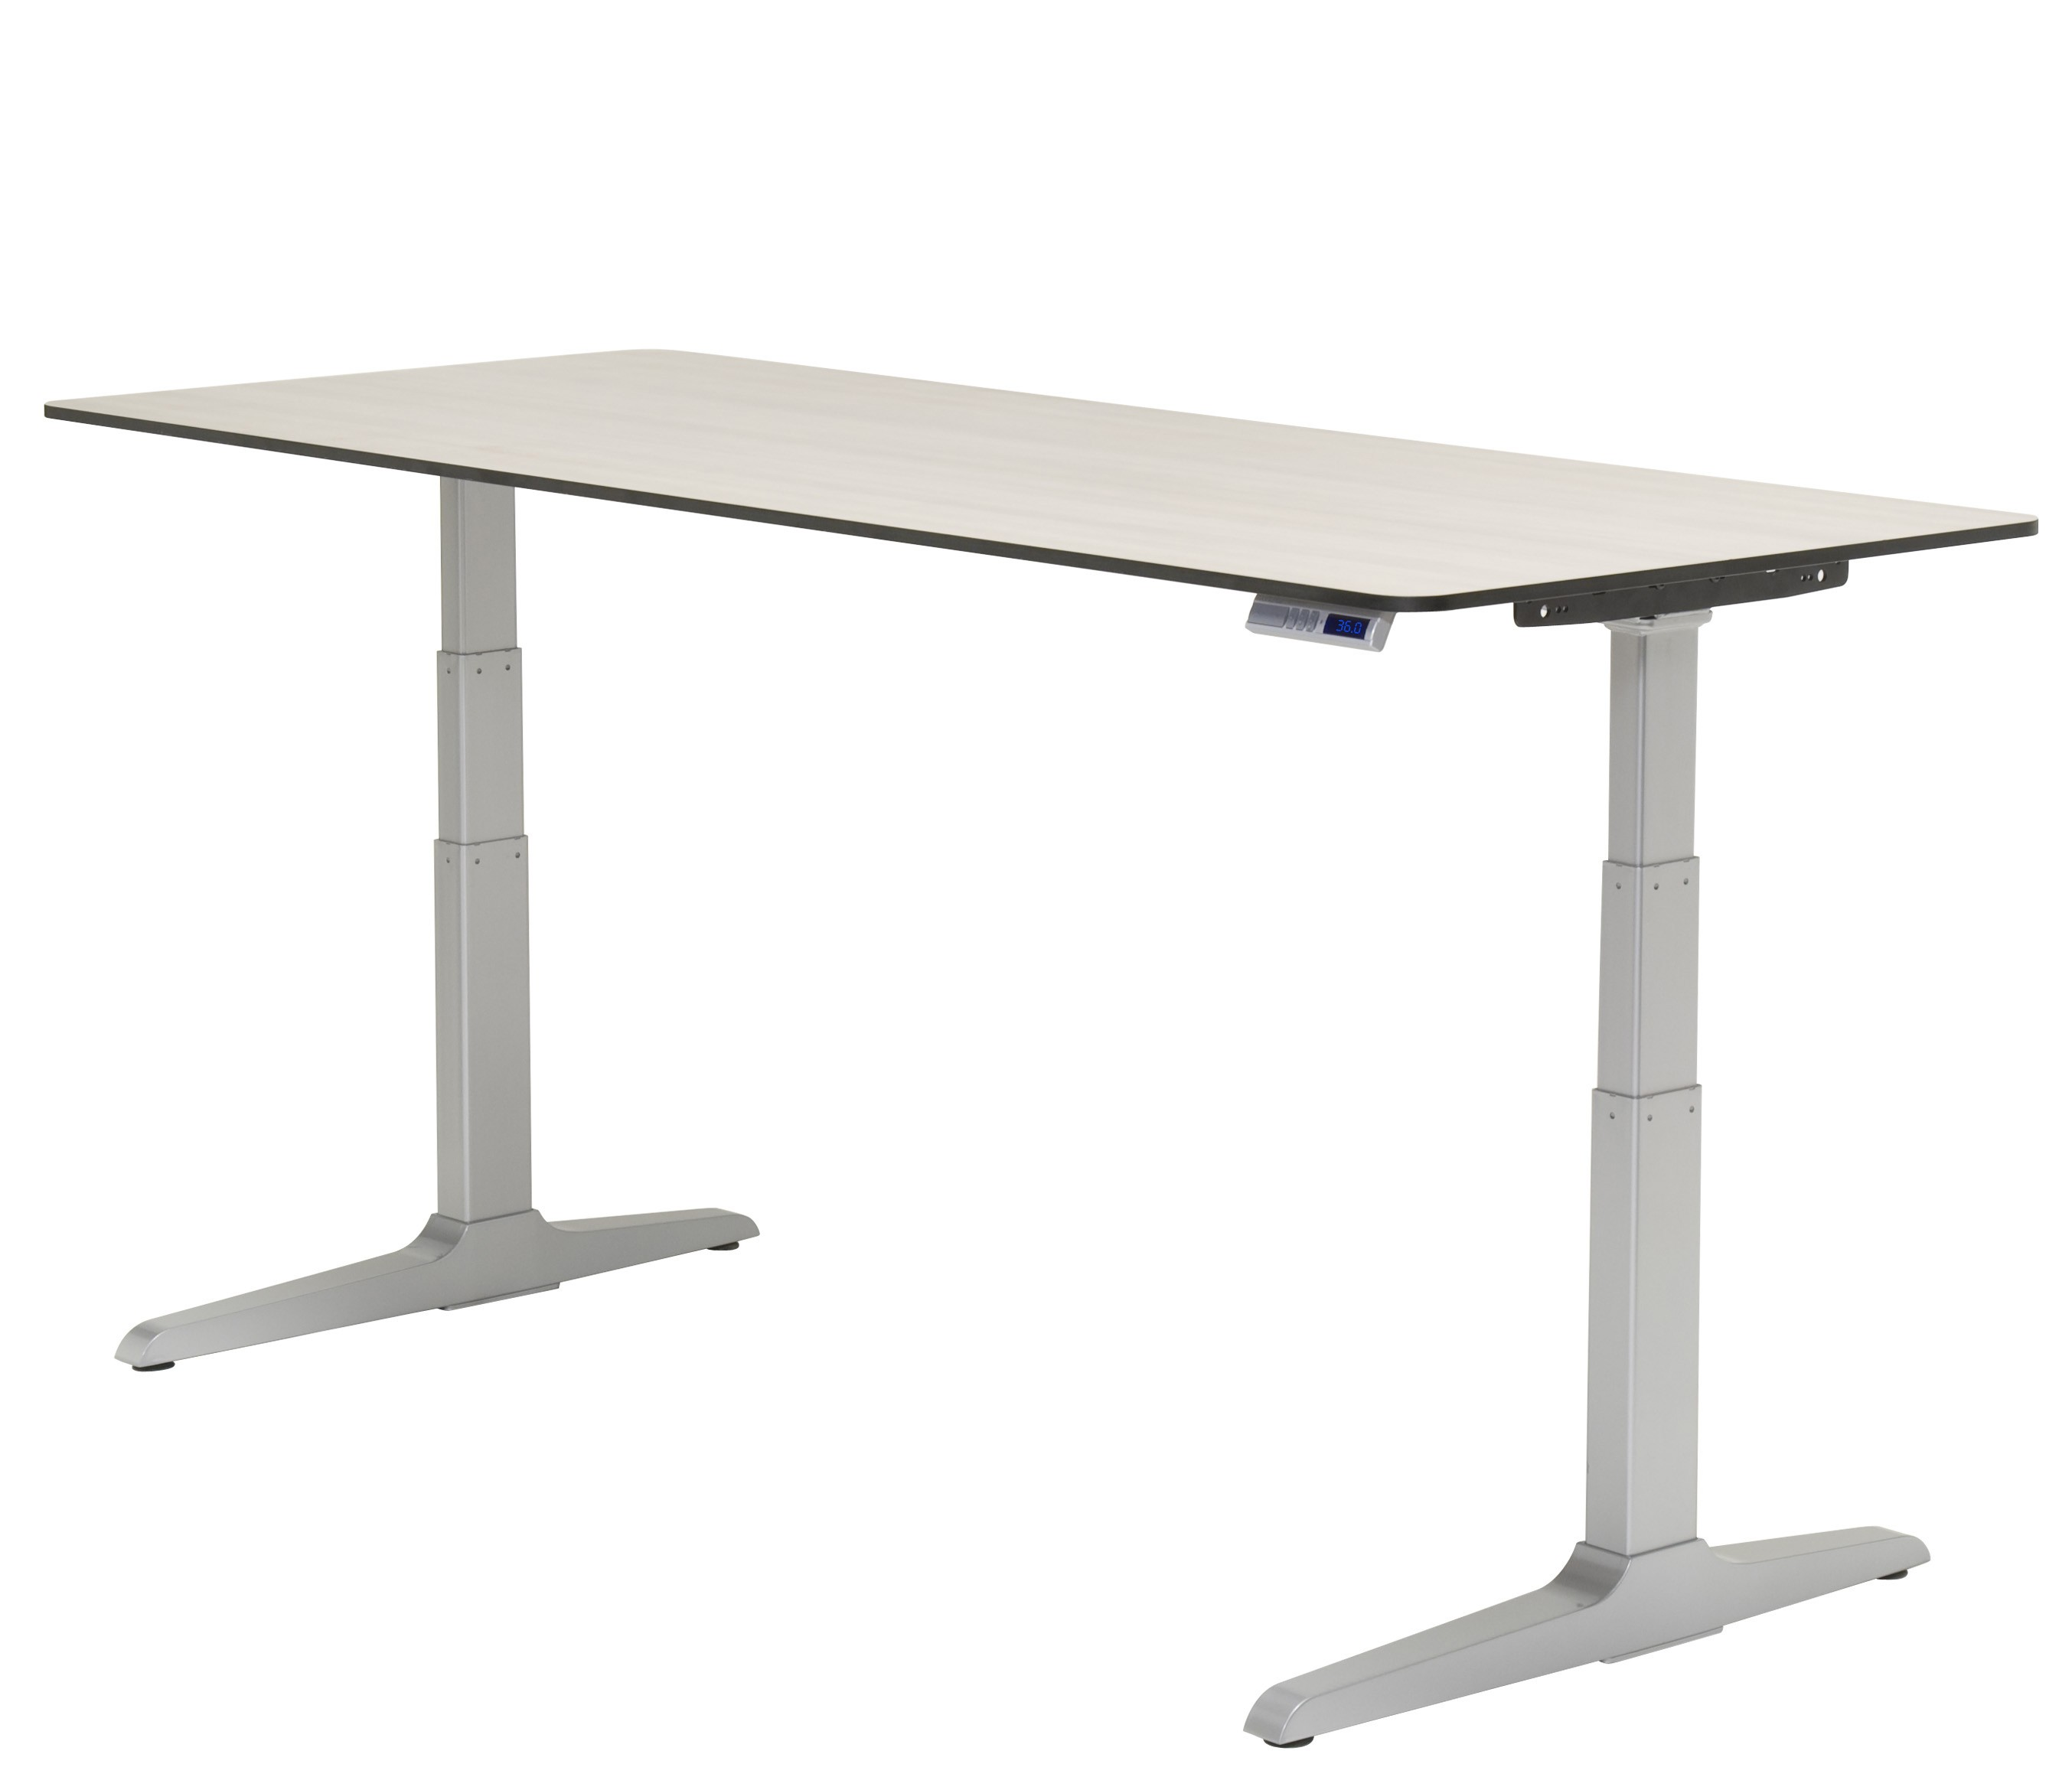 table sit legs adjustable stand desk one firgelli lift products electric leg e column